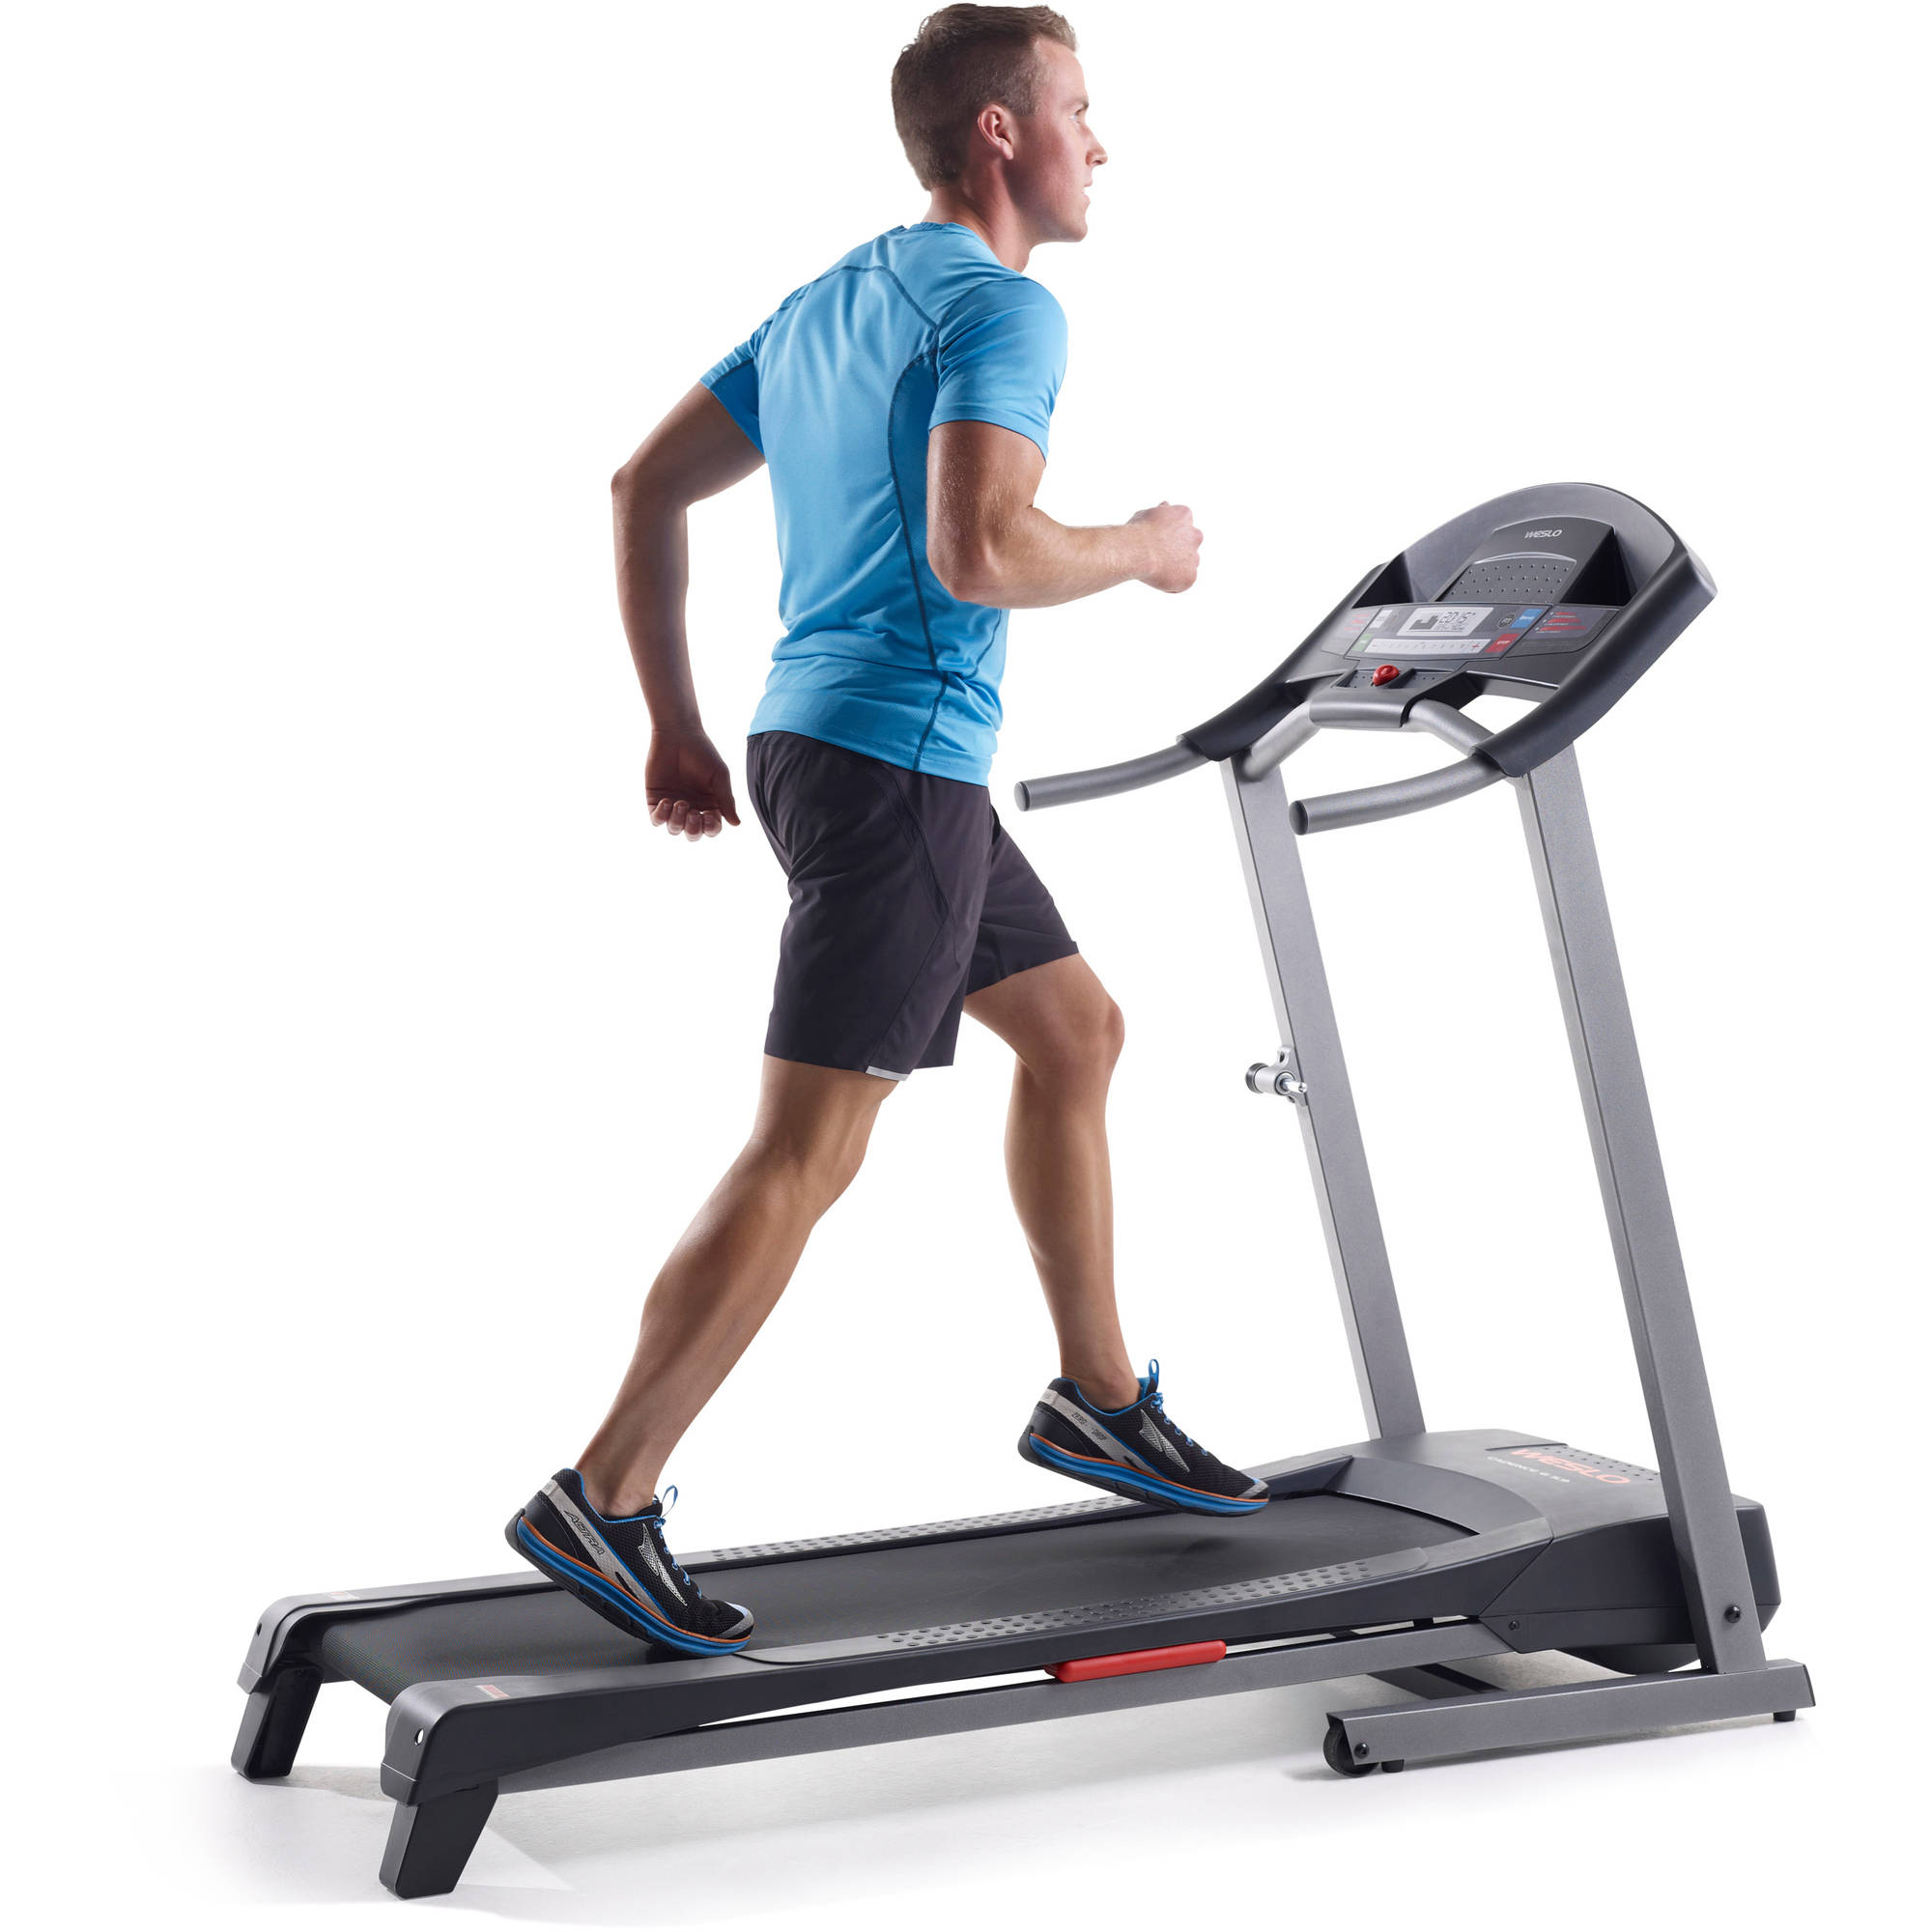 Weslo Cadence G 5.9i Folding Treadmill by Icon Health & Fitness Inc.